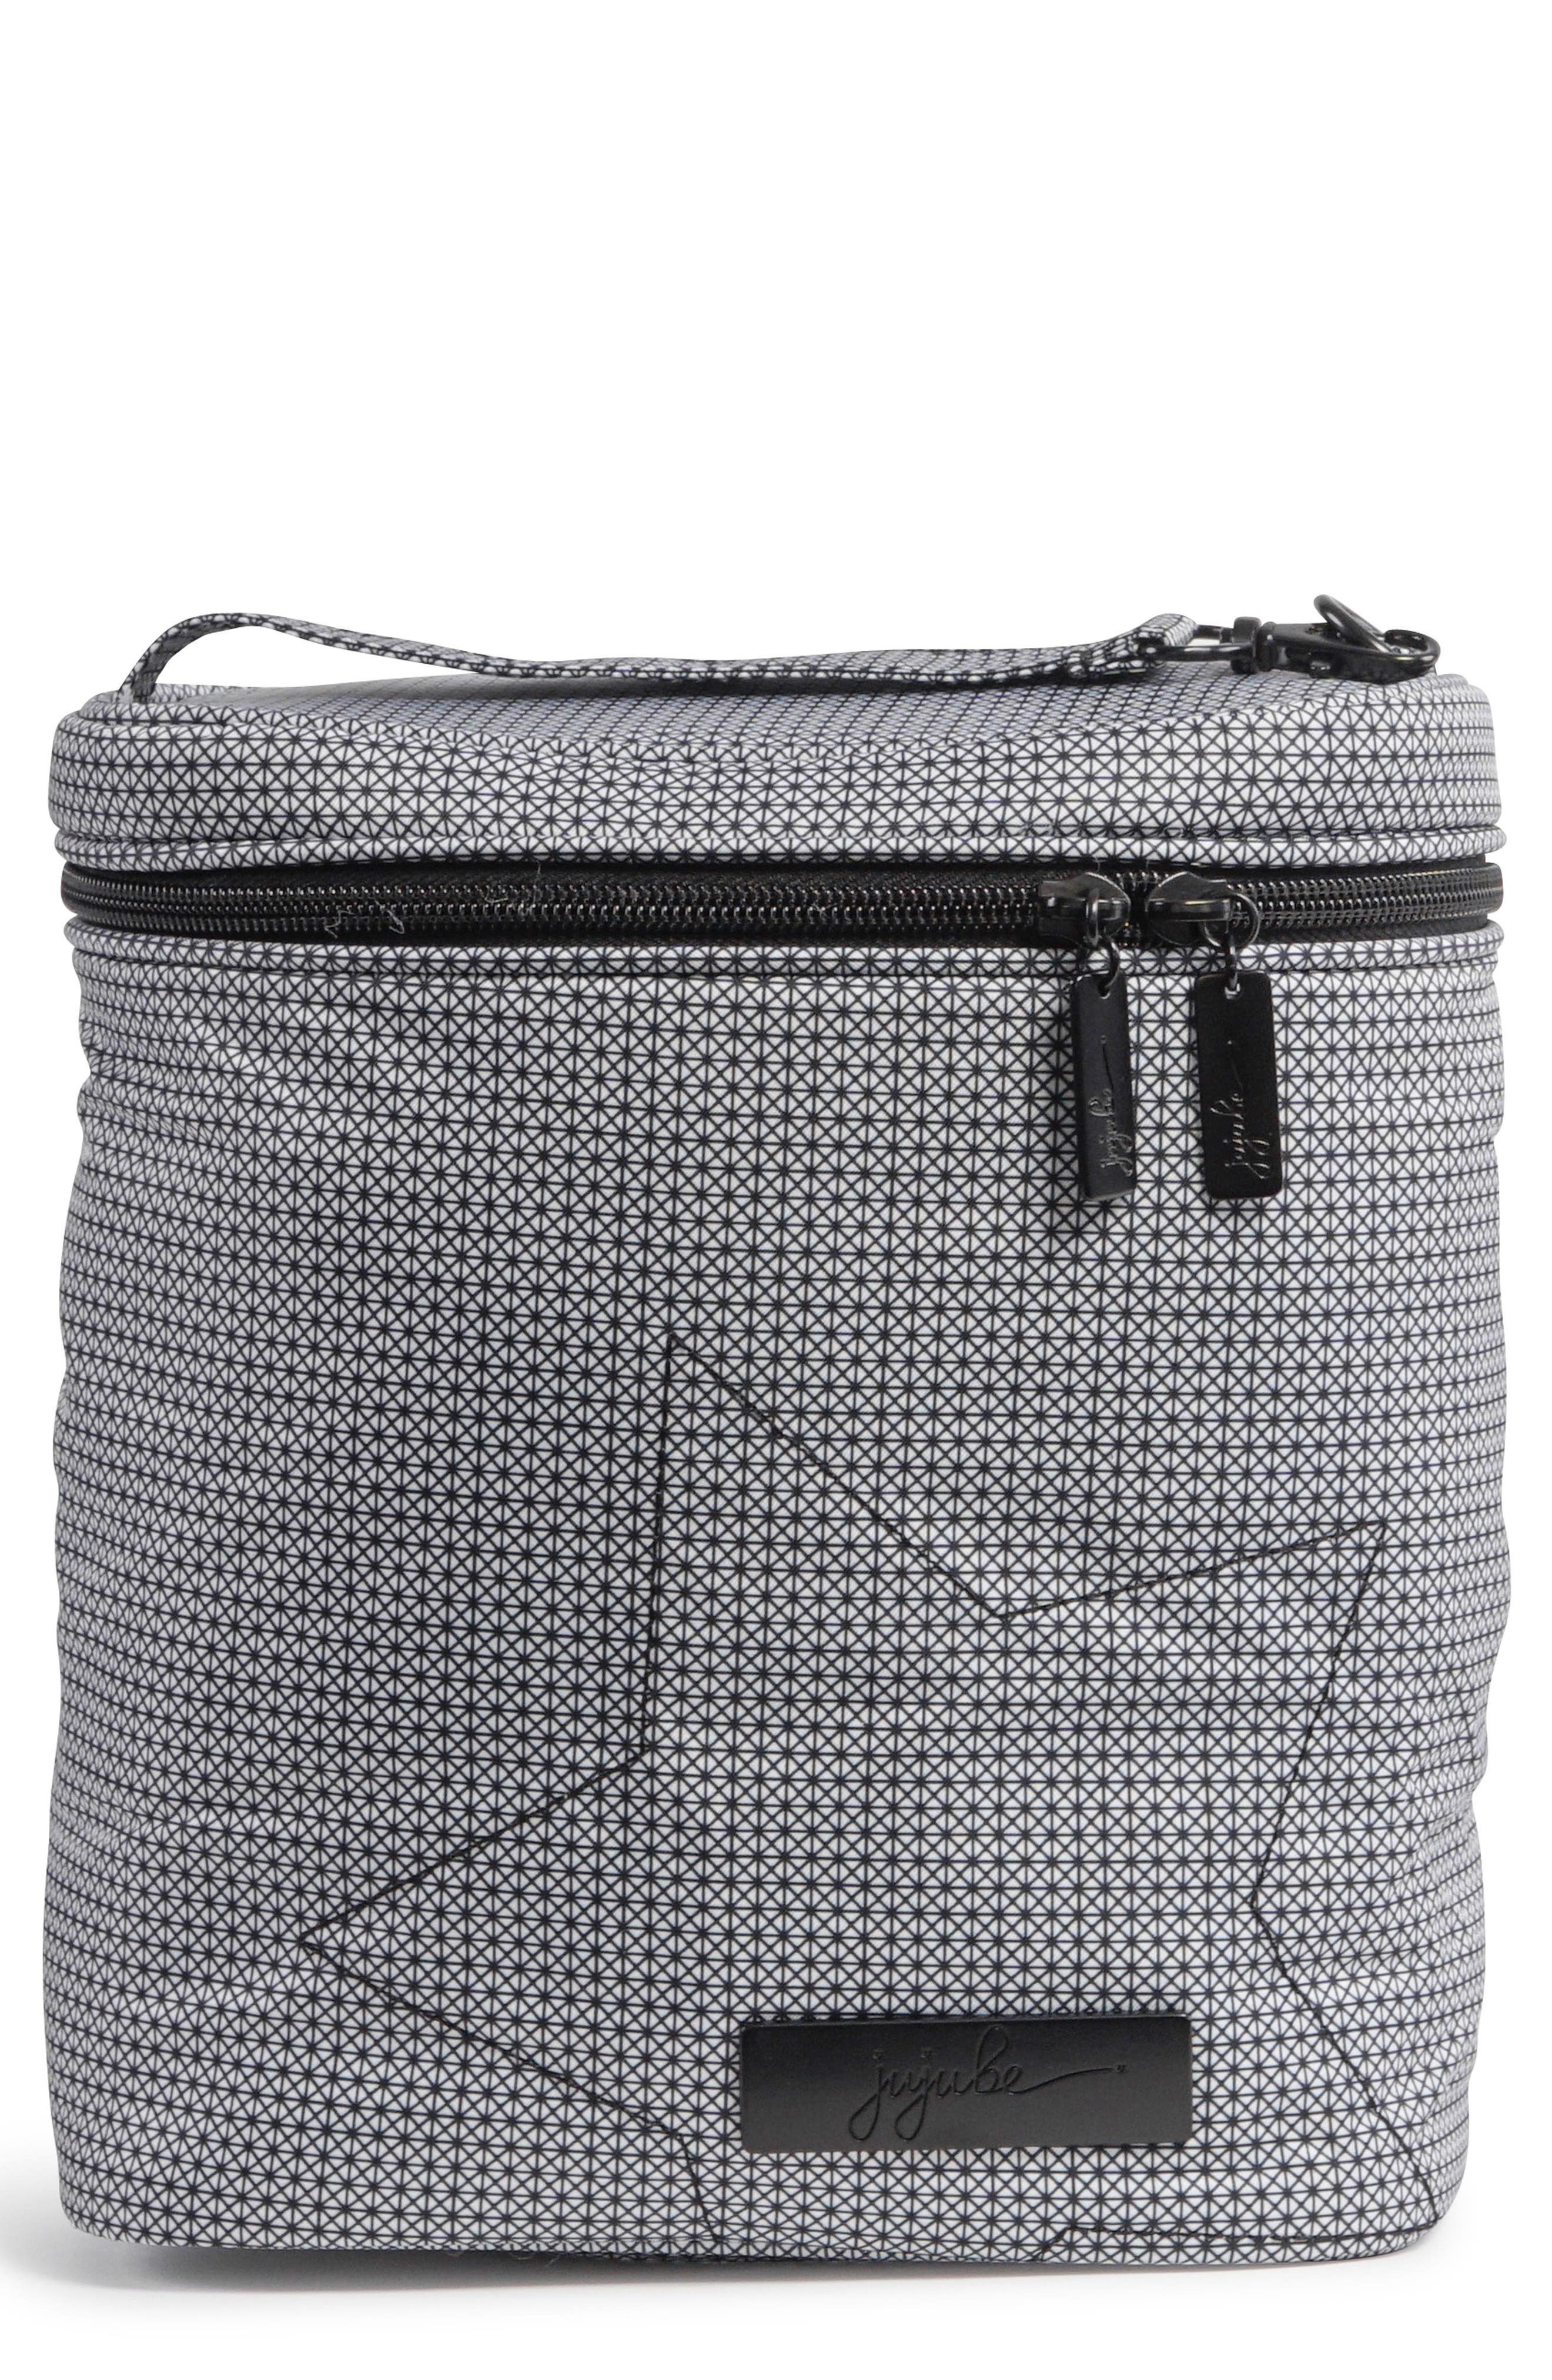 'Fuel Cell - Onyx Collection' Lunch Bag,                         Main,                         color, Black Matrix